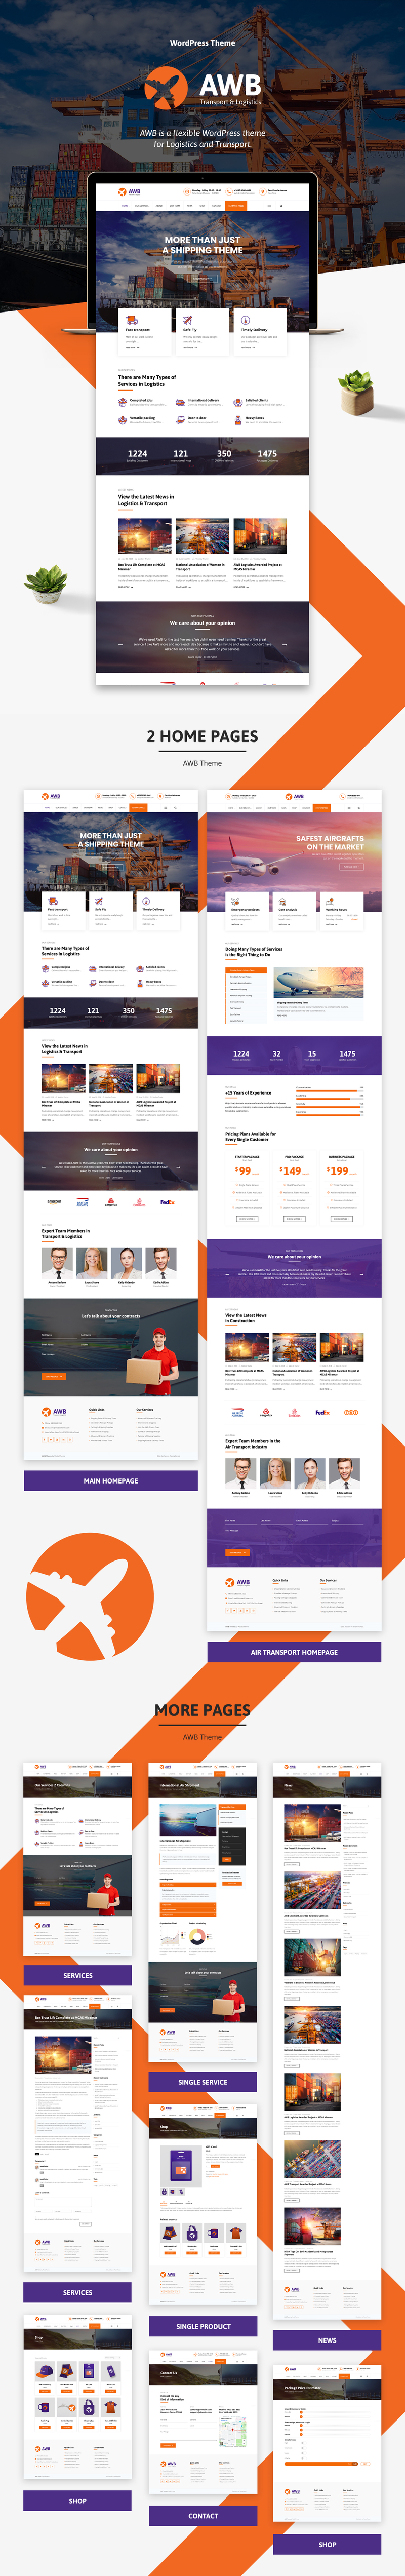 AWB - Transport & Logistics WordPress Theme - 1